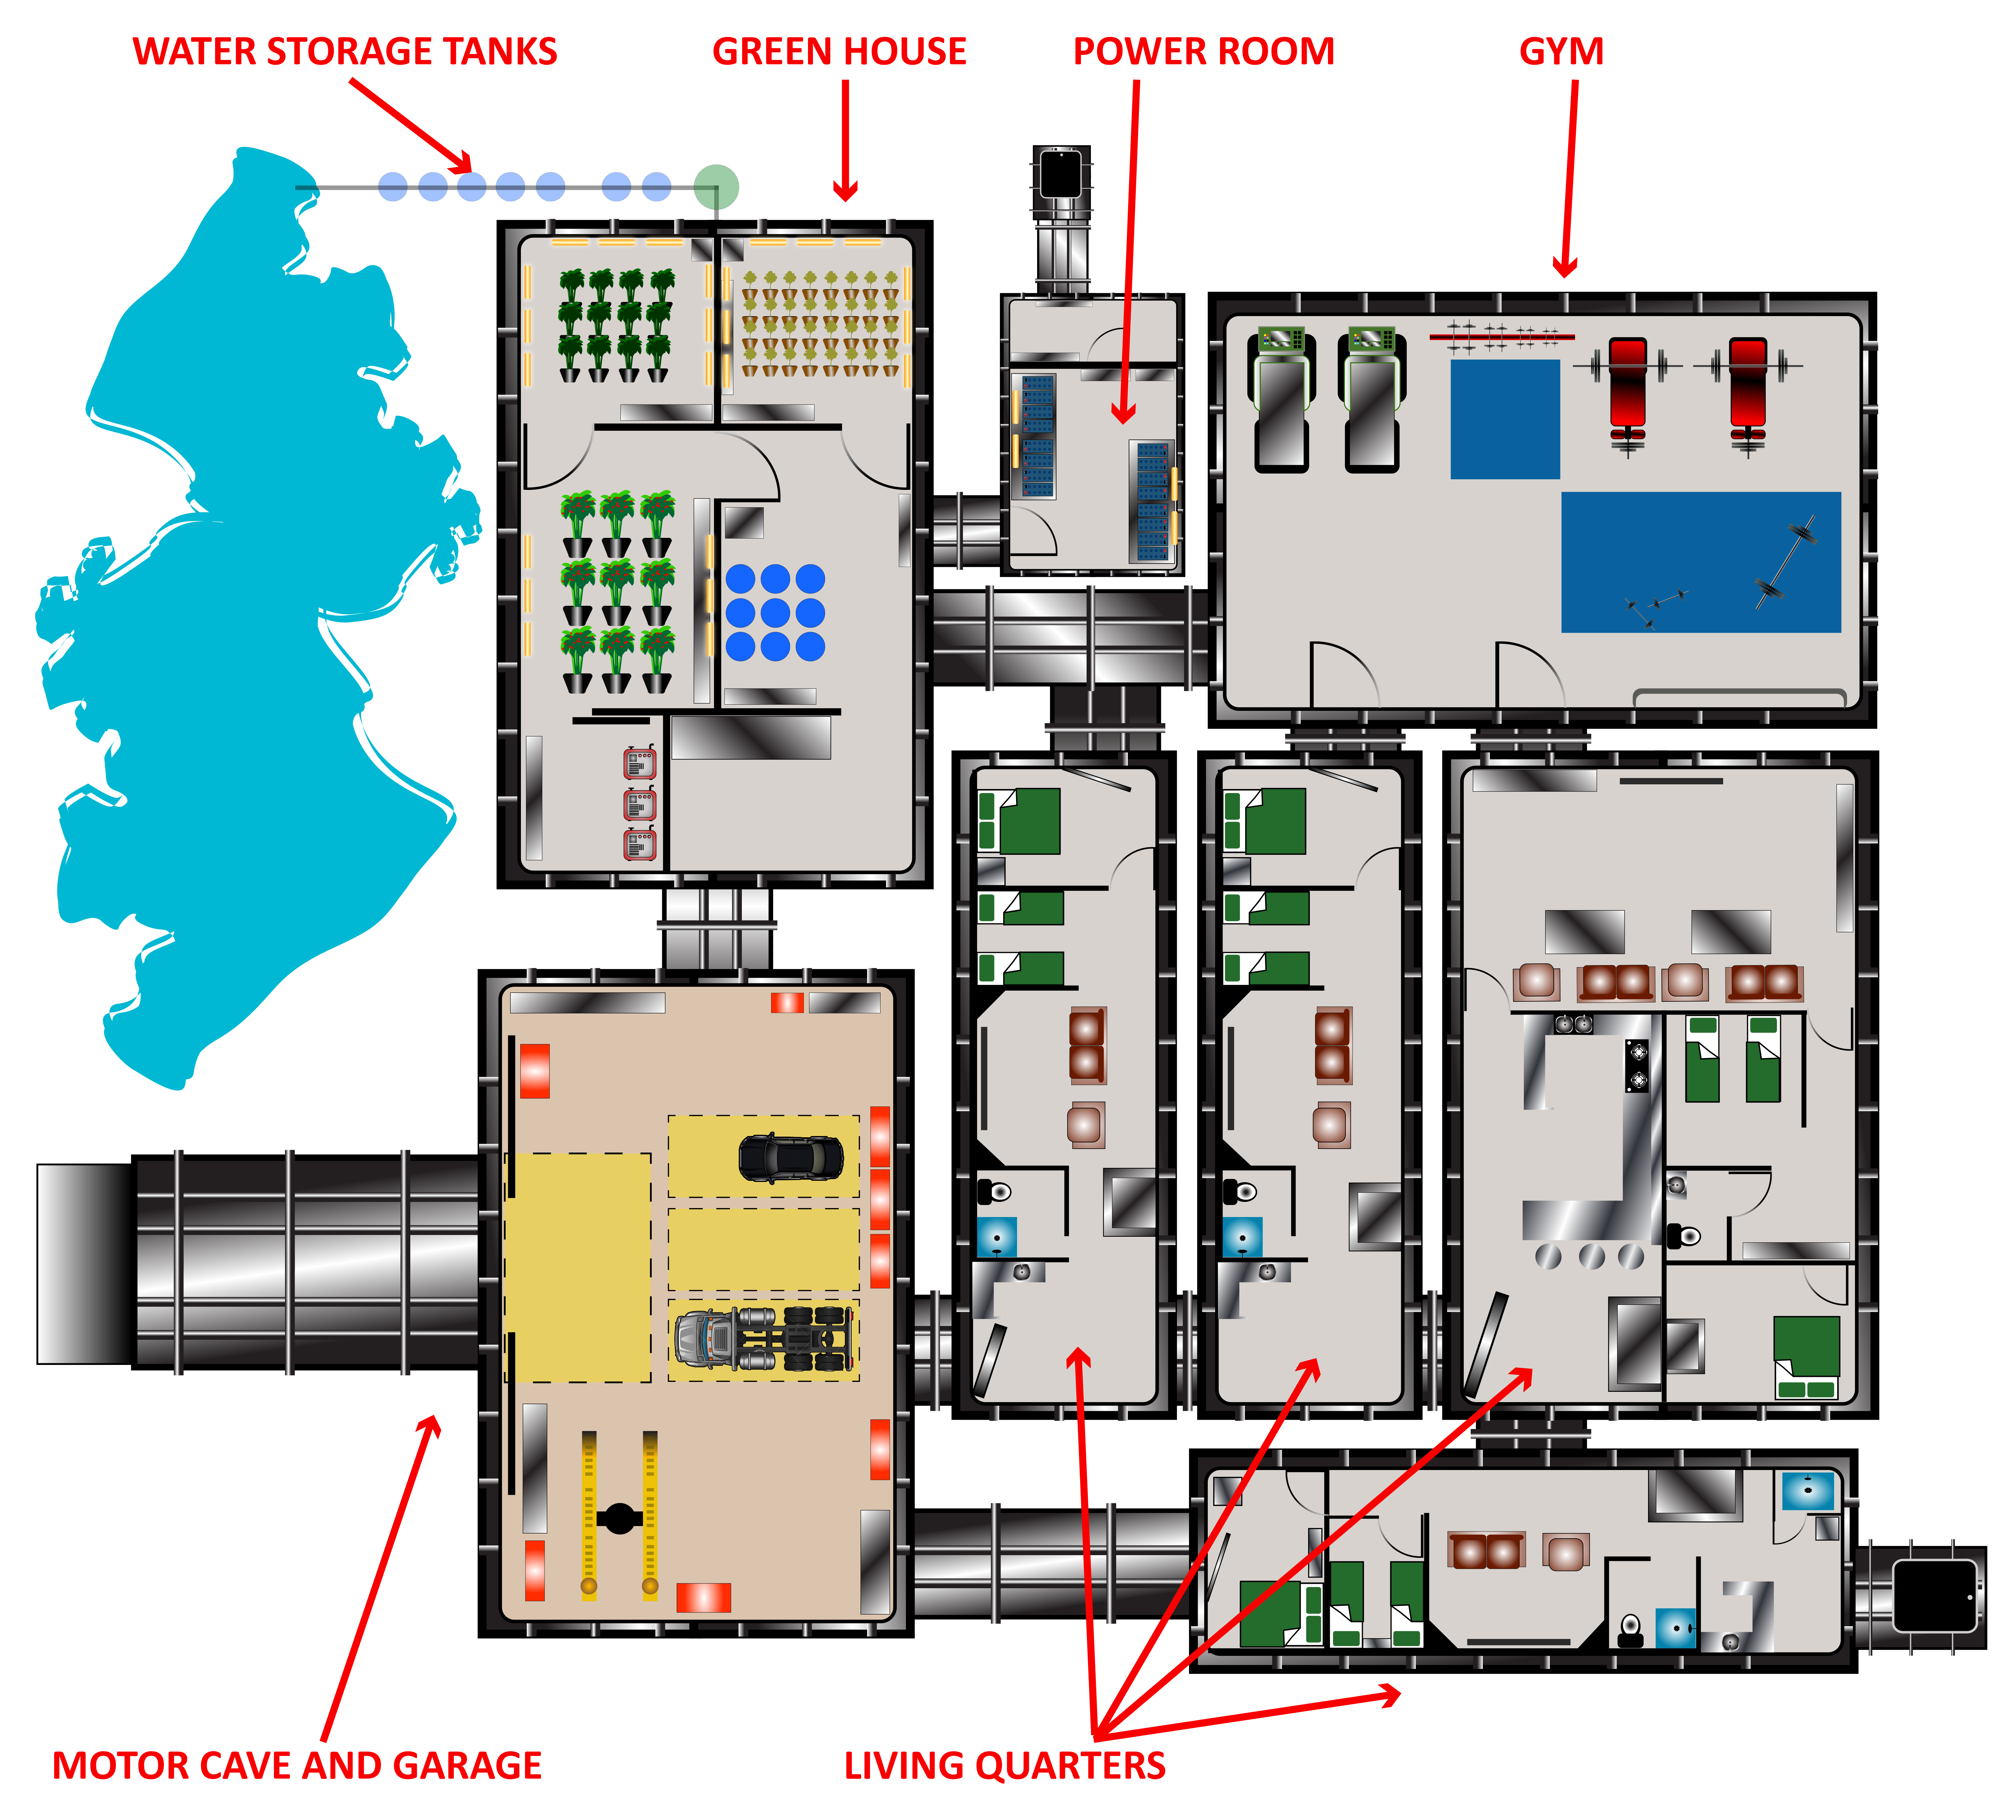 Cool Underground Floor Plan. Rising S Bunkers and Bomb Shelters offers the best underground steel  shelters bomb safe rooms blast doors on market shelter bunkers Pesquisa Google Secret